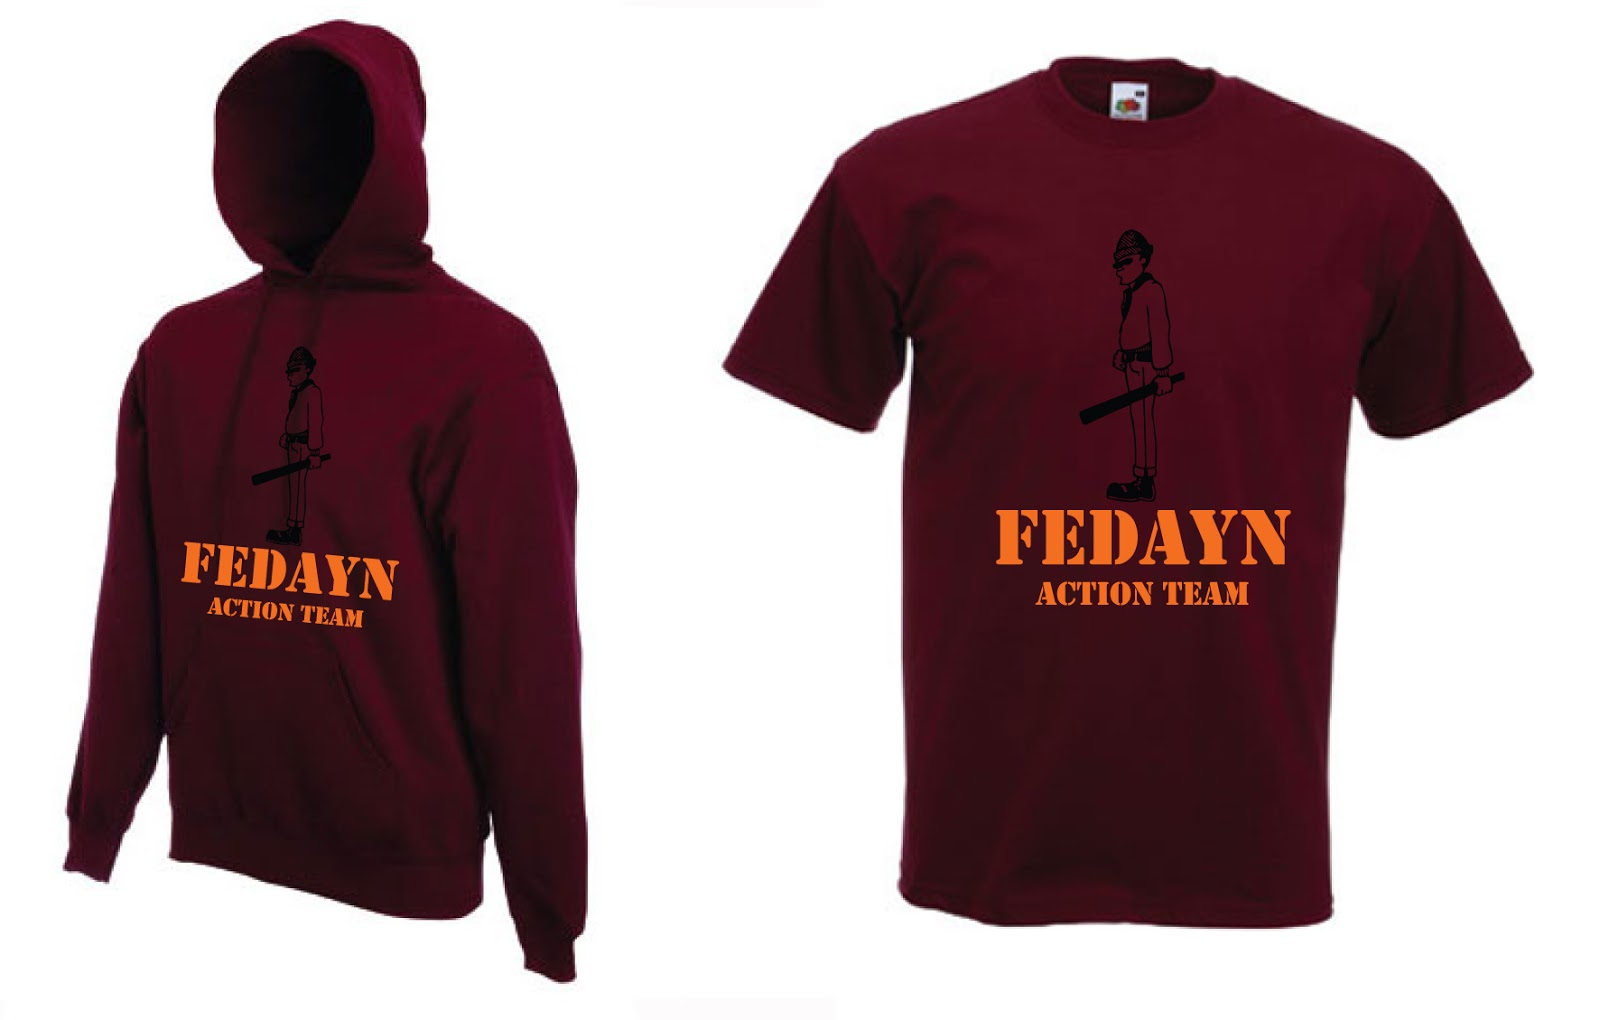 c025576d0c1d ULTRAS T-SHIRTS   APPAREL  ROMA - FEDAYN ACTION TEAM